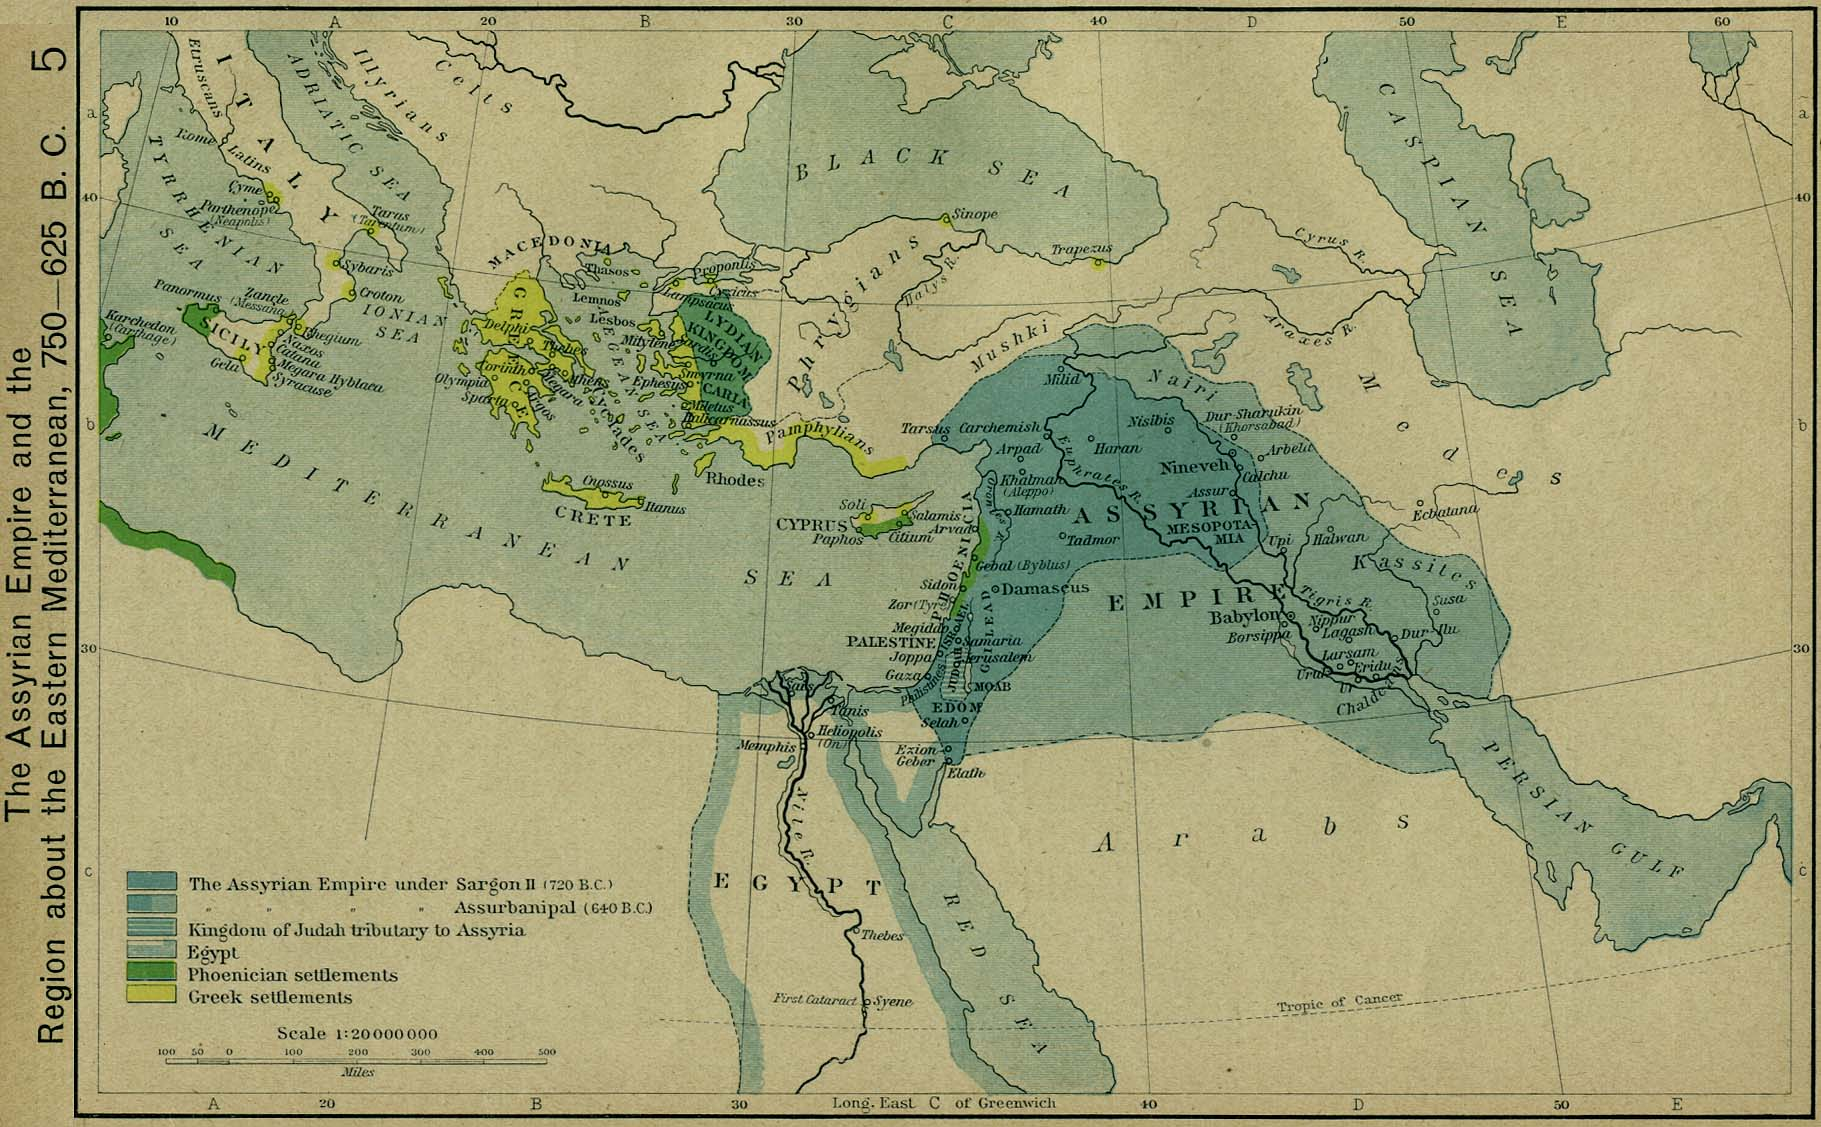 Middle East Historical Maps - Perry-Castañeda Map Collection ... on map of egypt ny, country of egypt 1400 bc, map ancient egypt 30 bc, map of egypt atb c 1450, map of egypt pe, map of egypt bce, map of king intermediate,